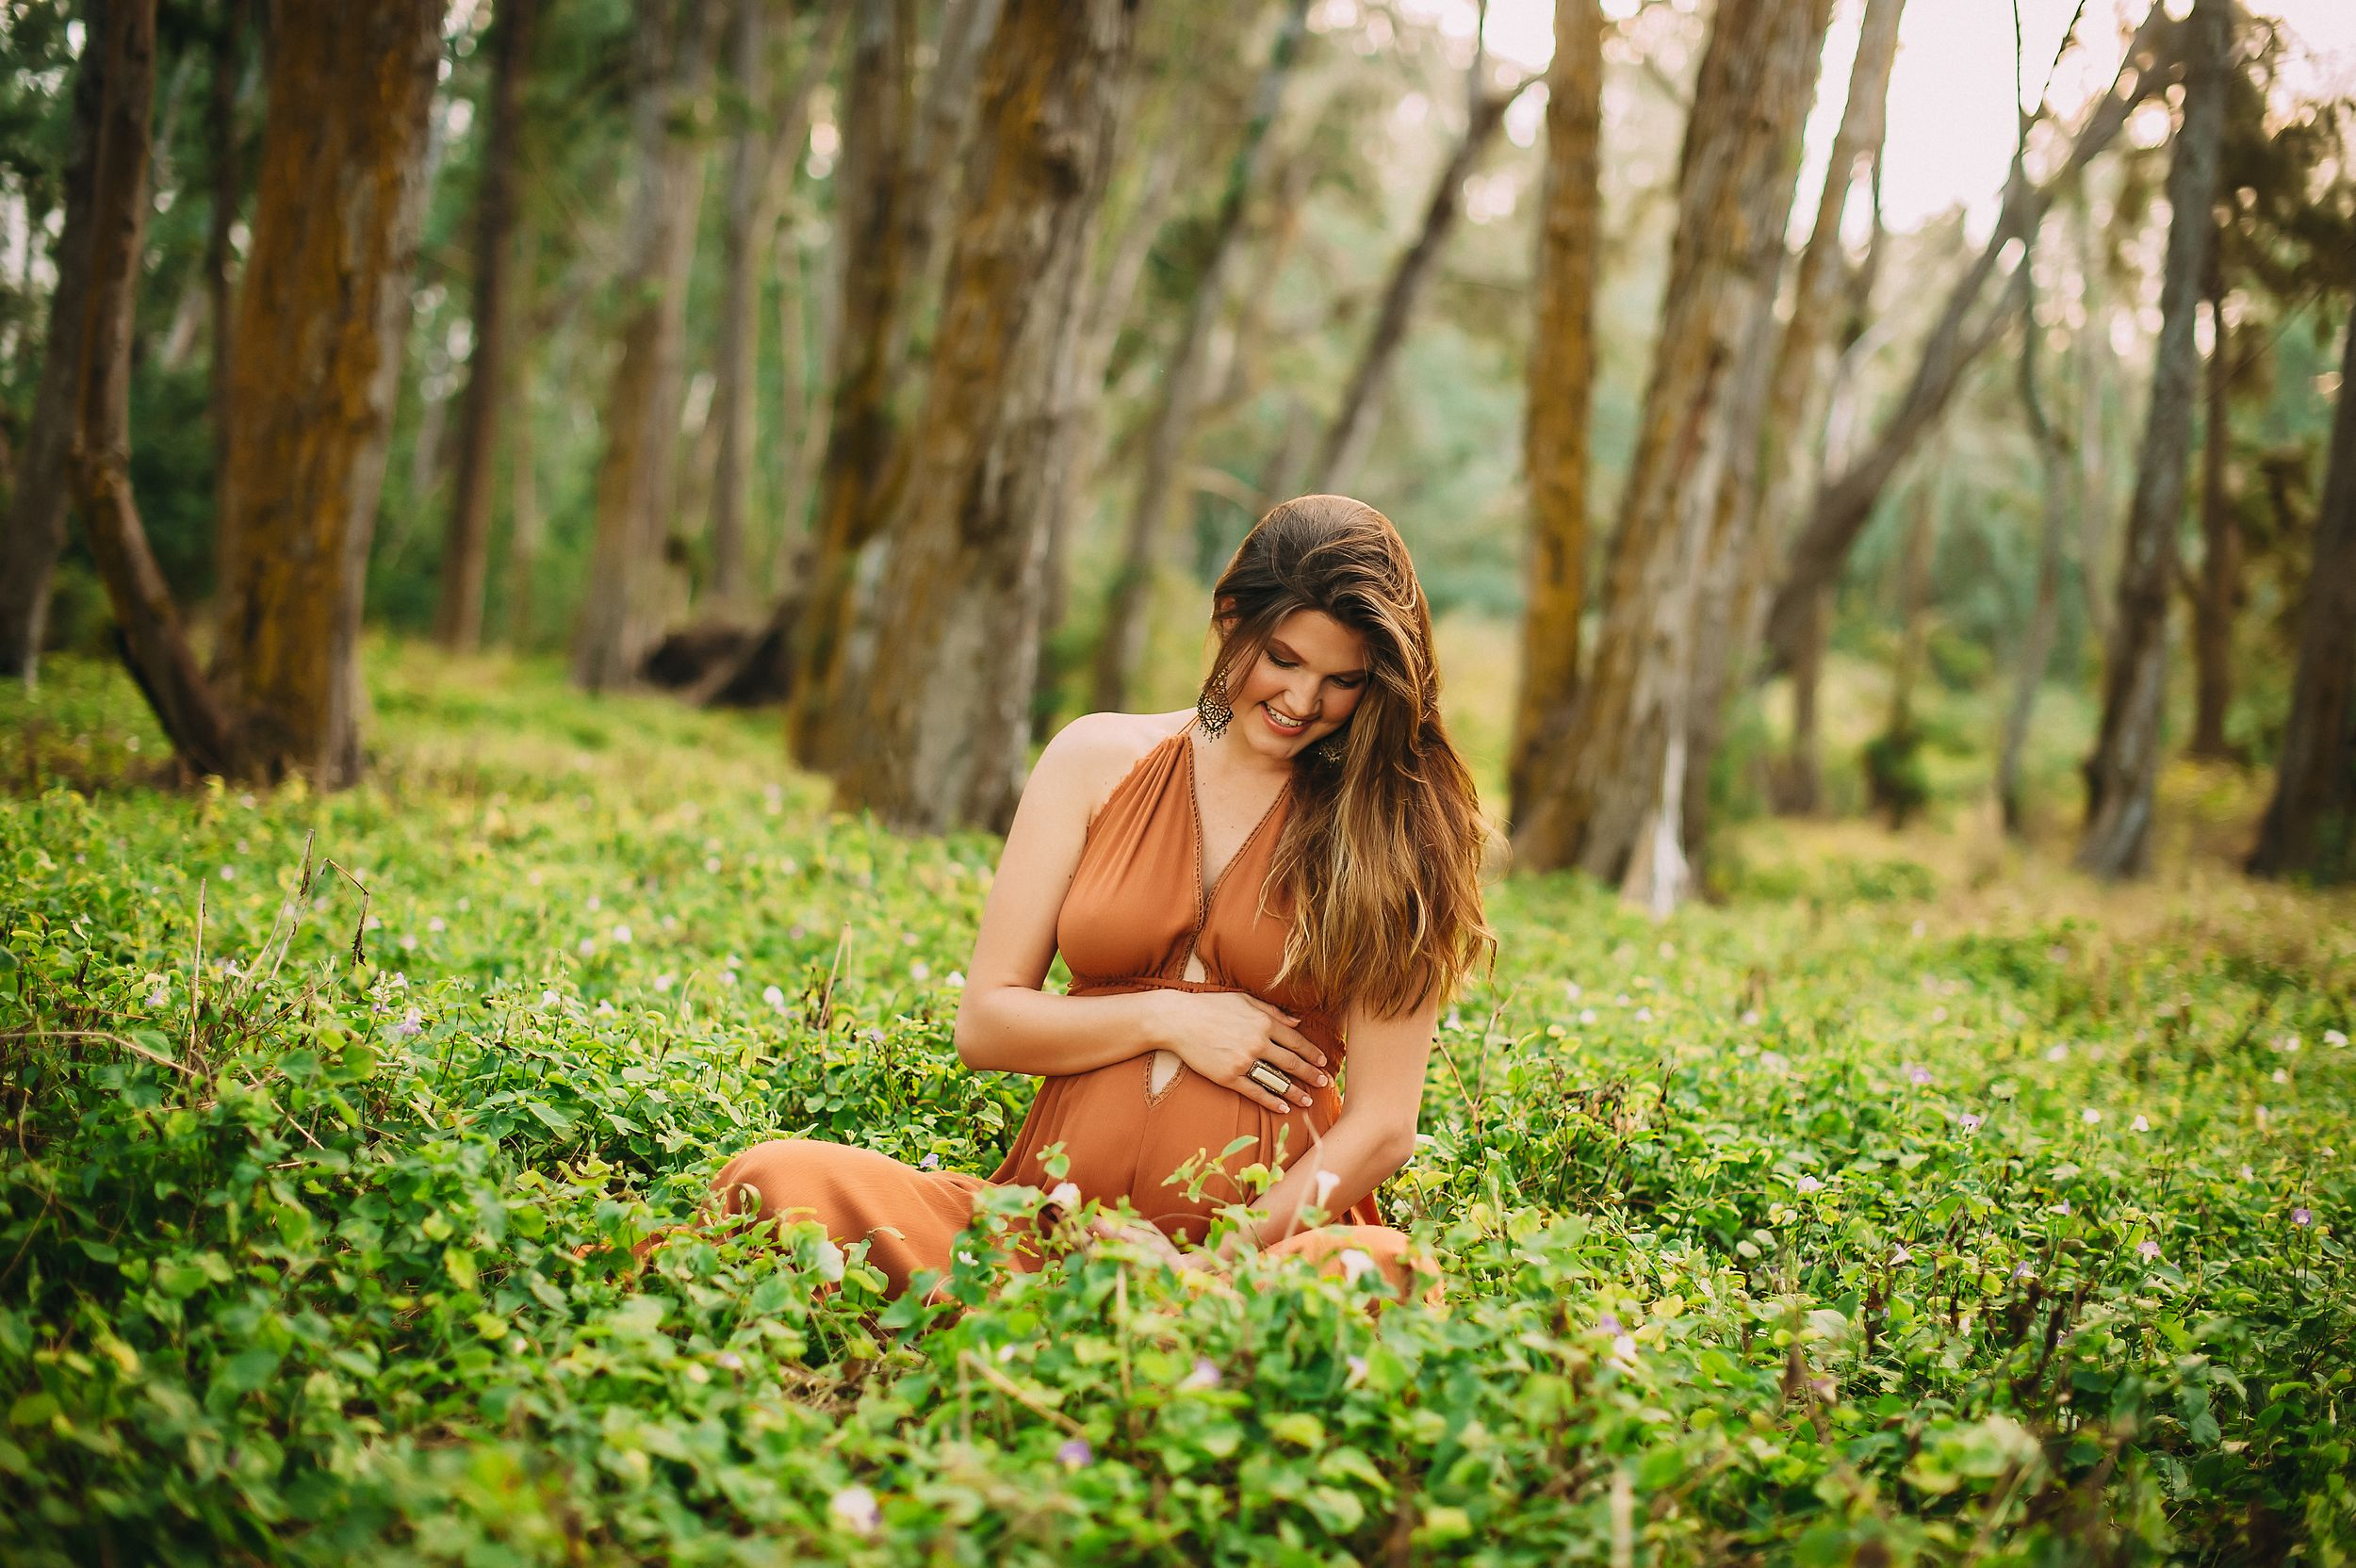 Oahu Hawaii Maternity Photographer - Honolulu Maternity Photographer - Hawaii Maternity-5